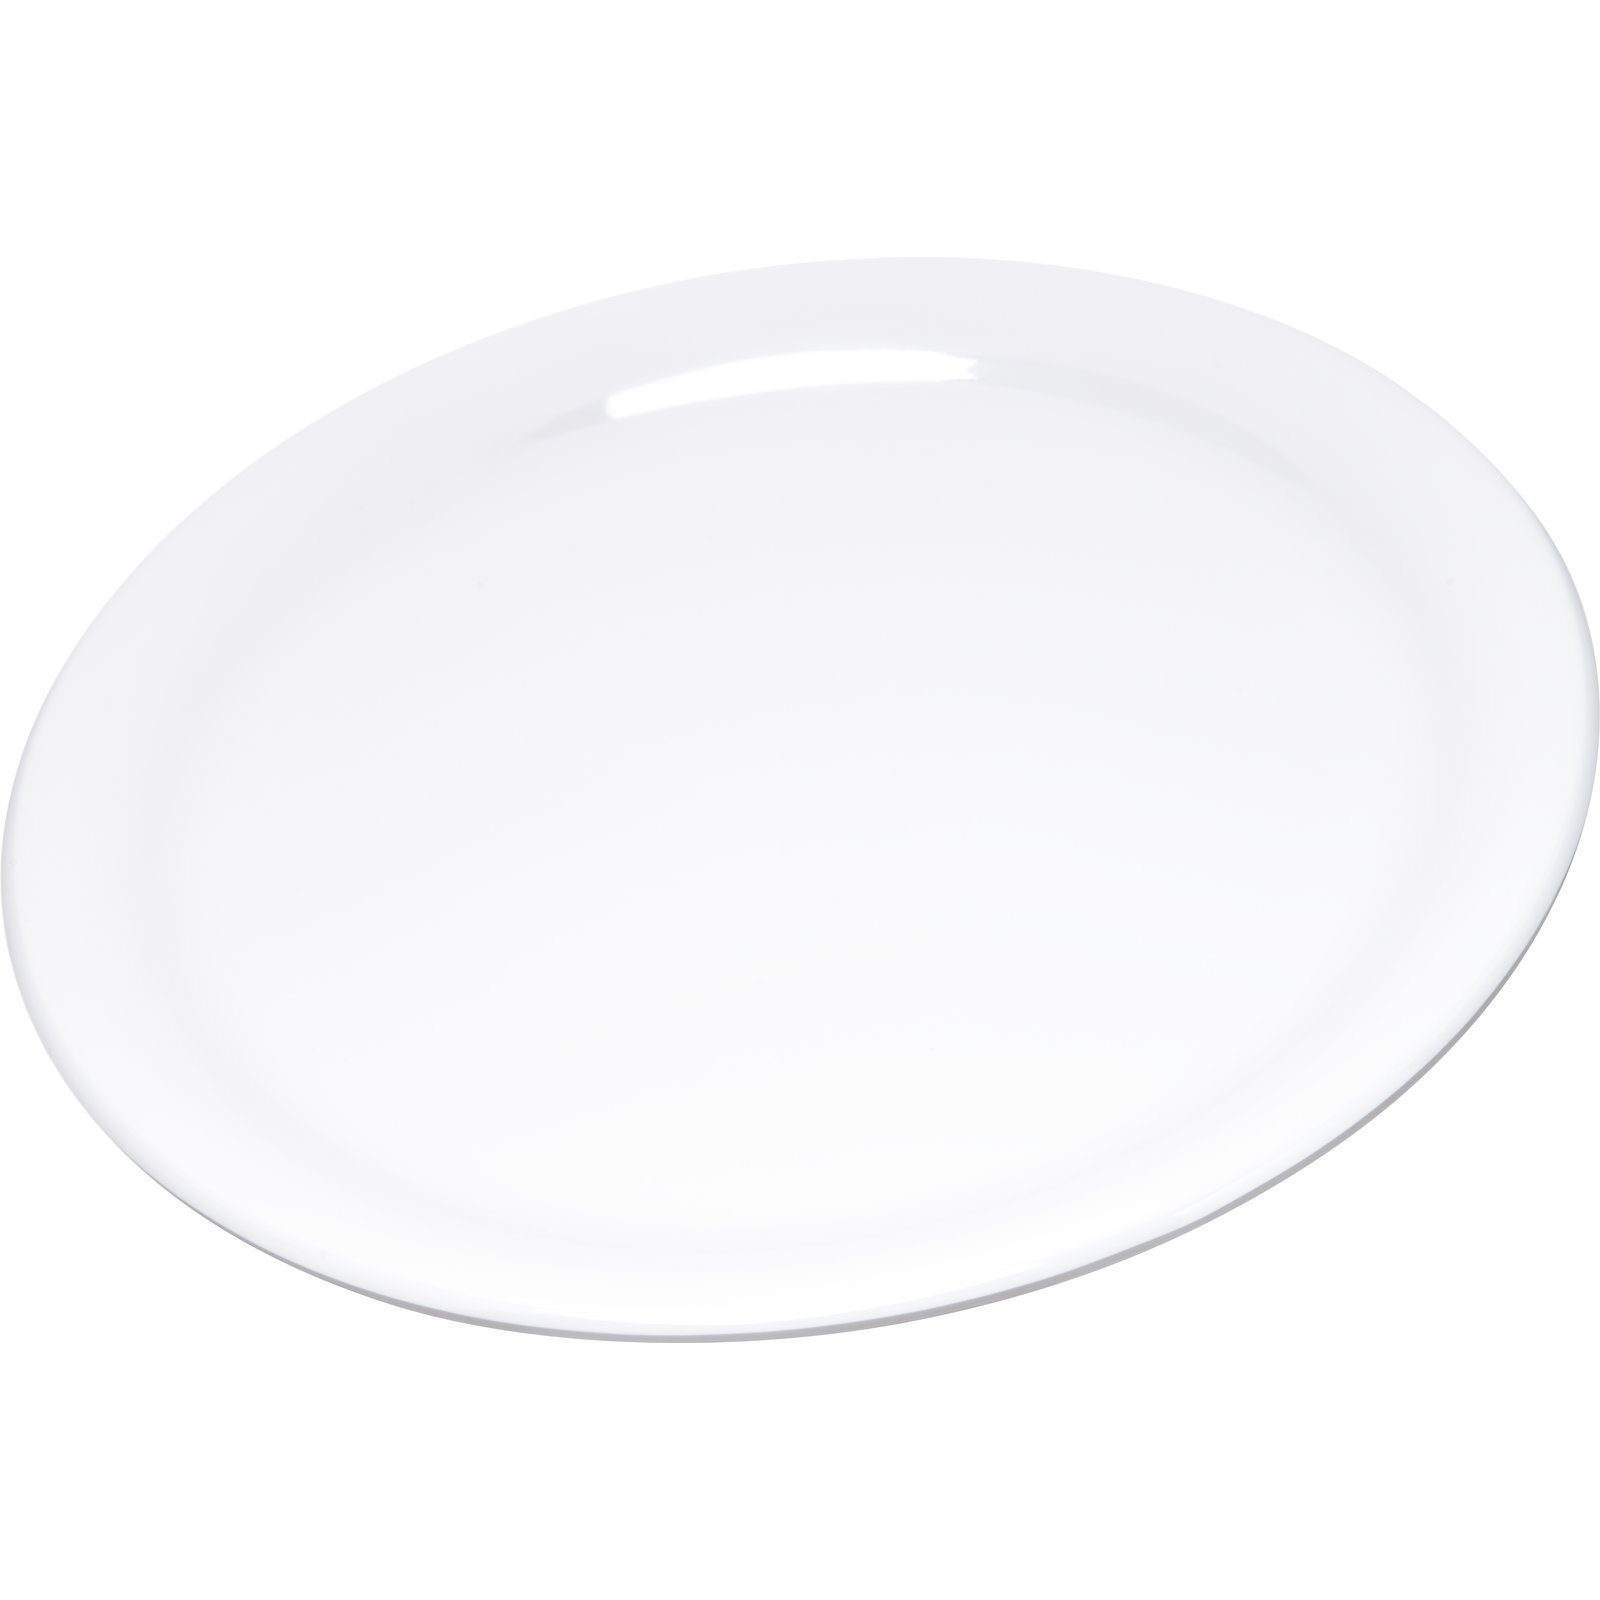 4300402 - Durus® Melamine Narrow Rim Dinner Plate 9\  - White  sc 1 st  Carlisle FoodService Products : melamine oval dinner plates - pezcame.com